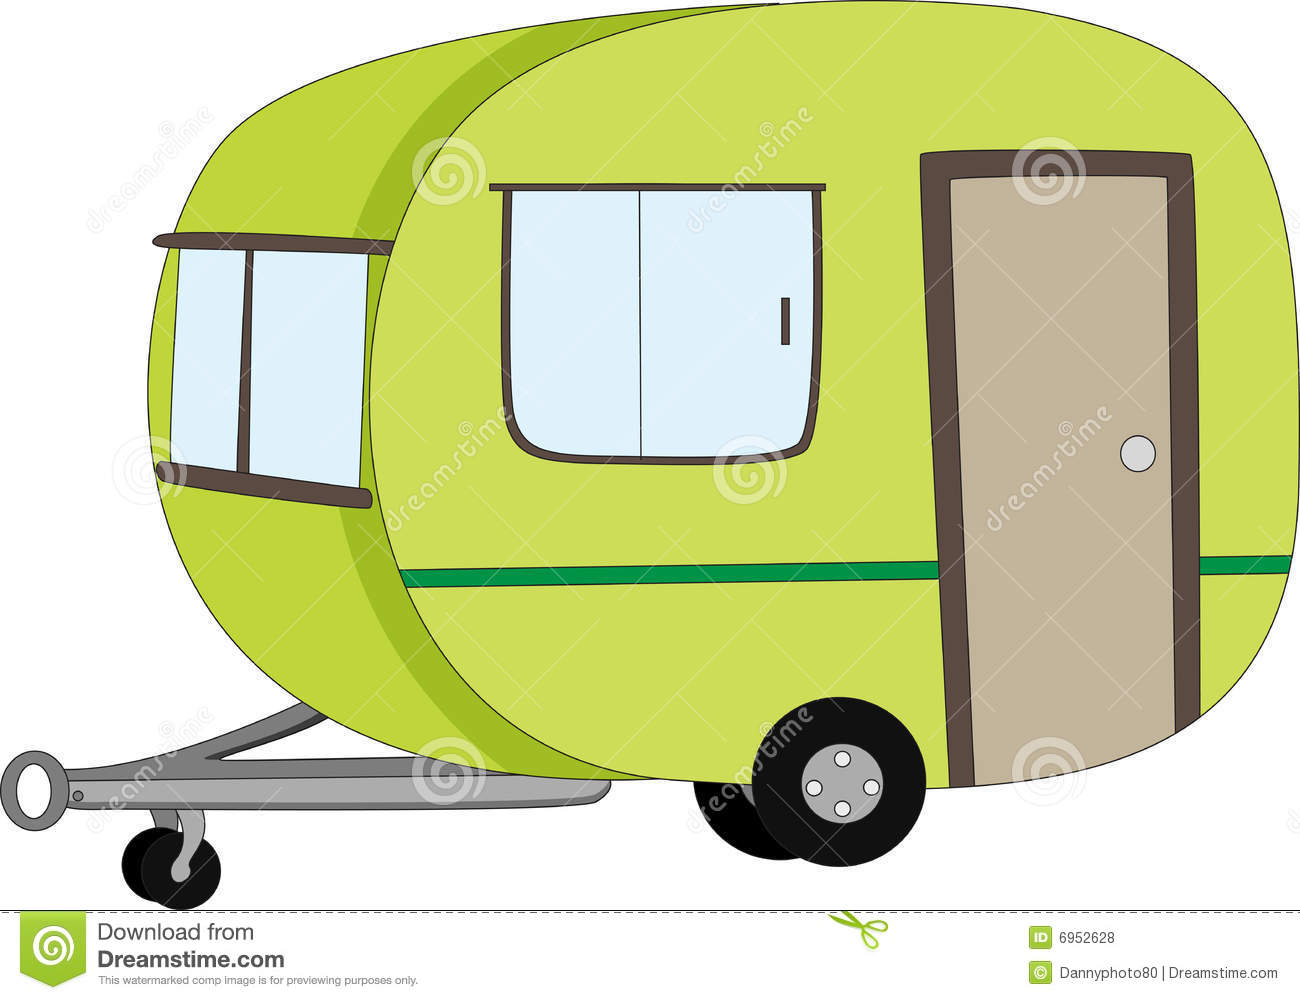 Caravan Royalty Free Stock Photos - Image: 6952628